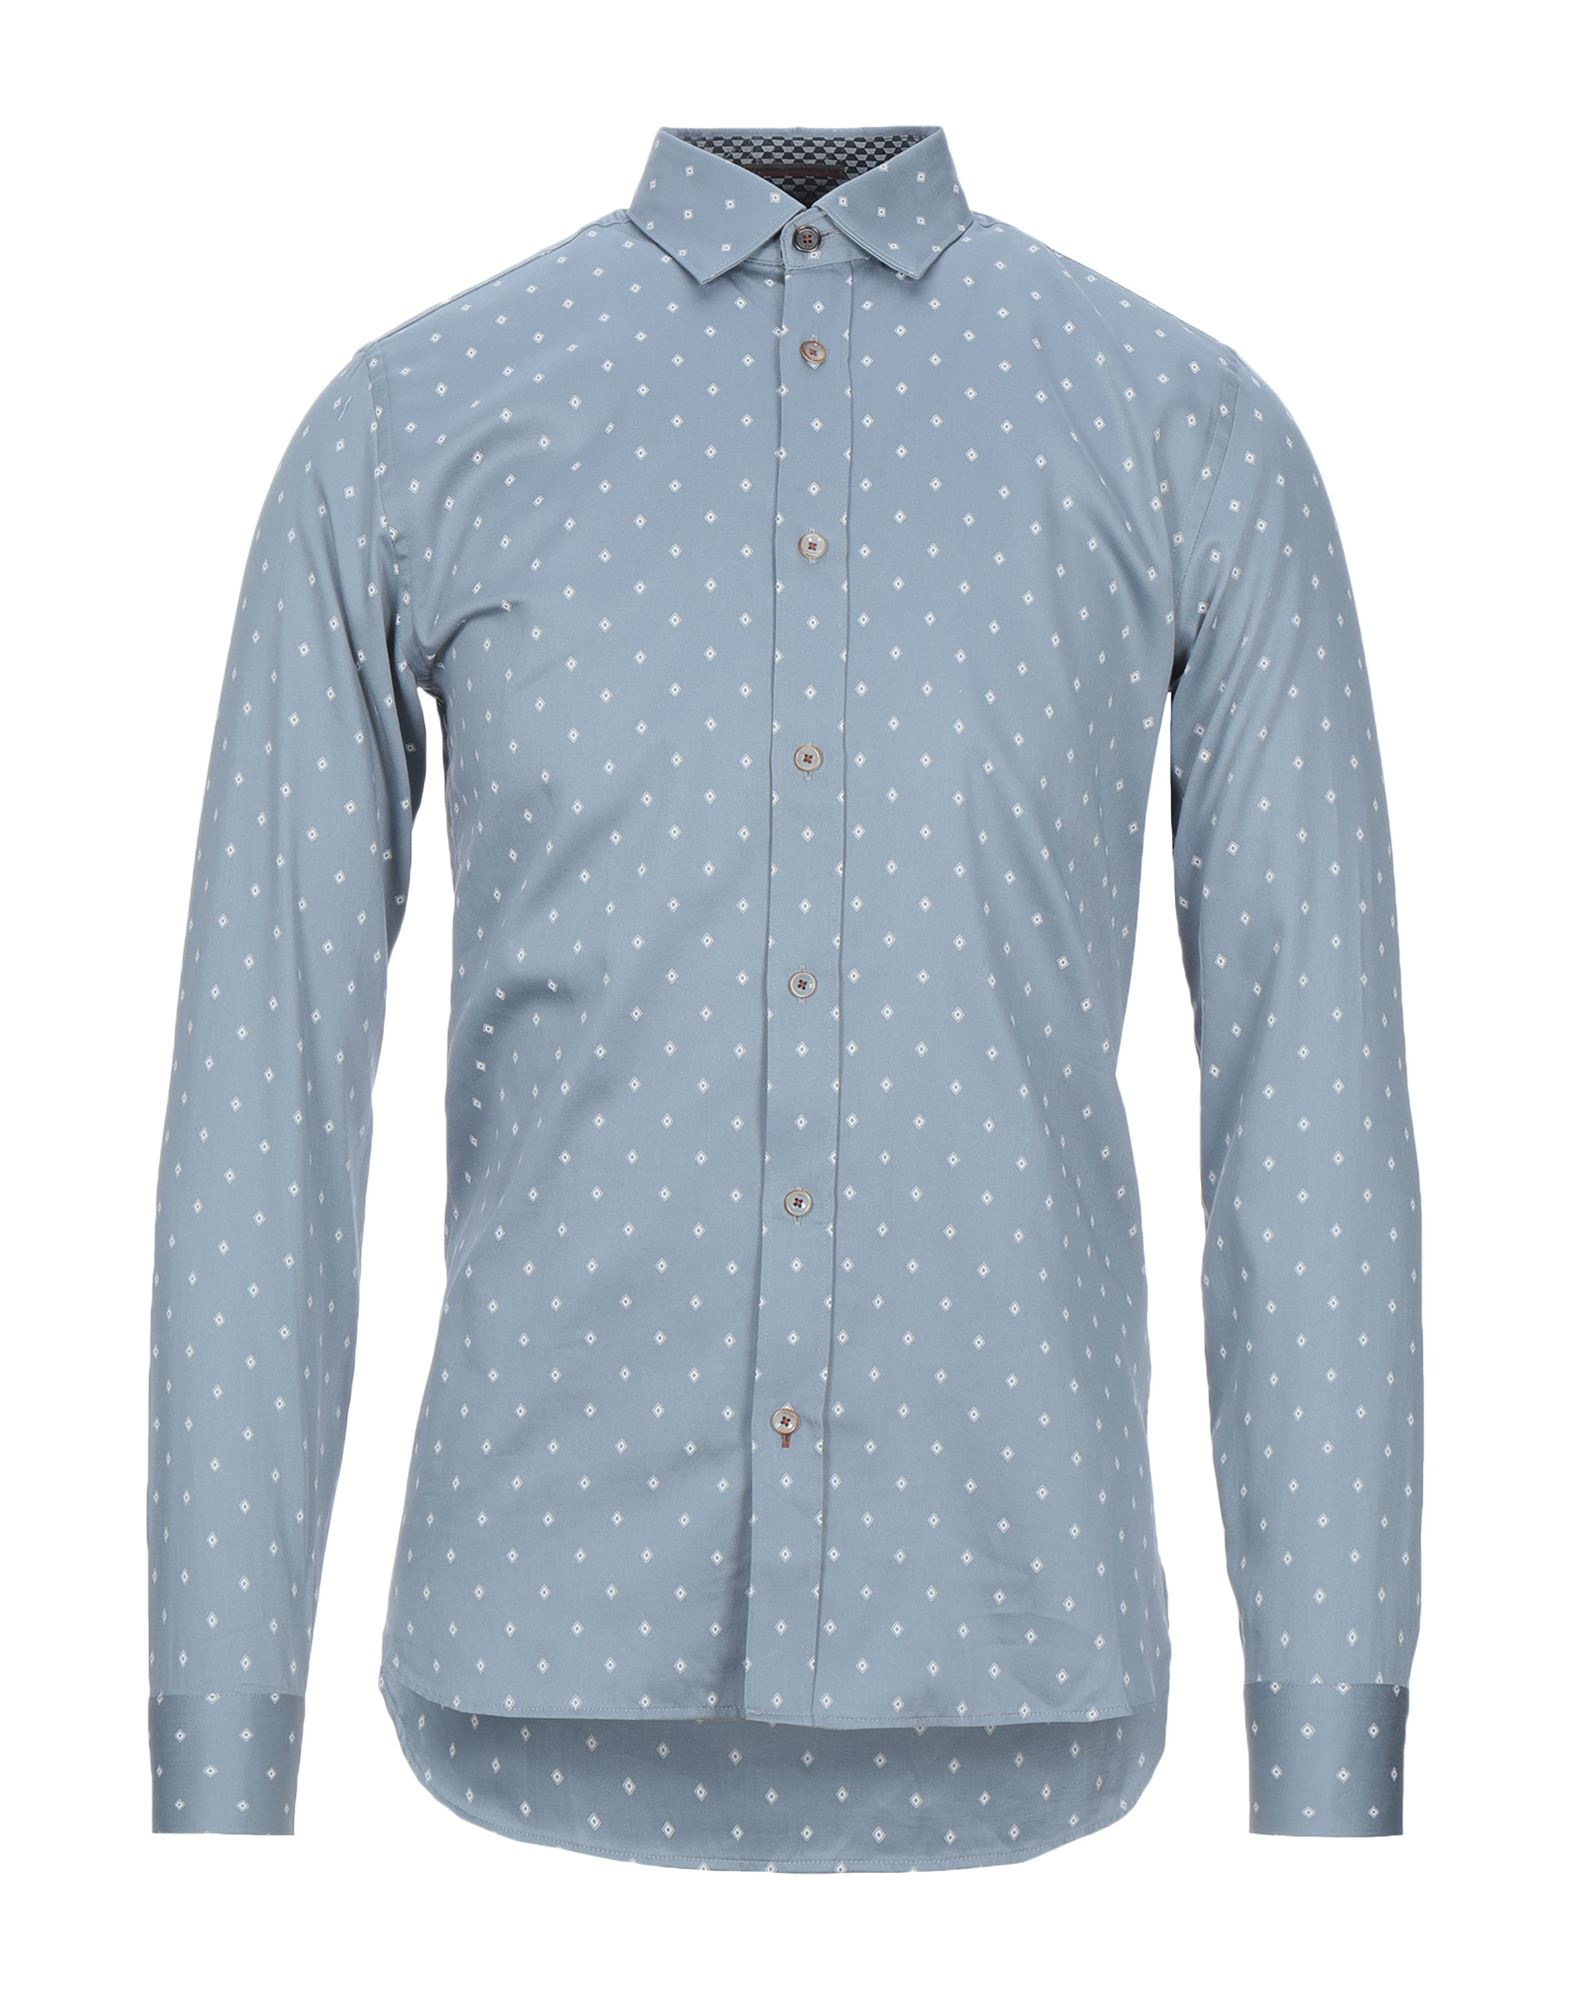 TED BAKER Shirts - Item 38959634